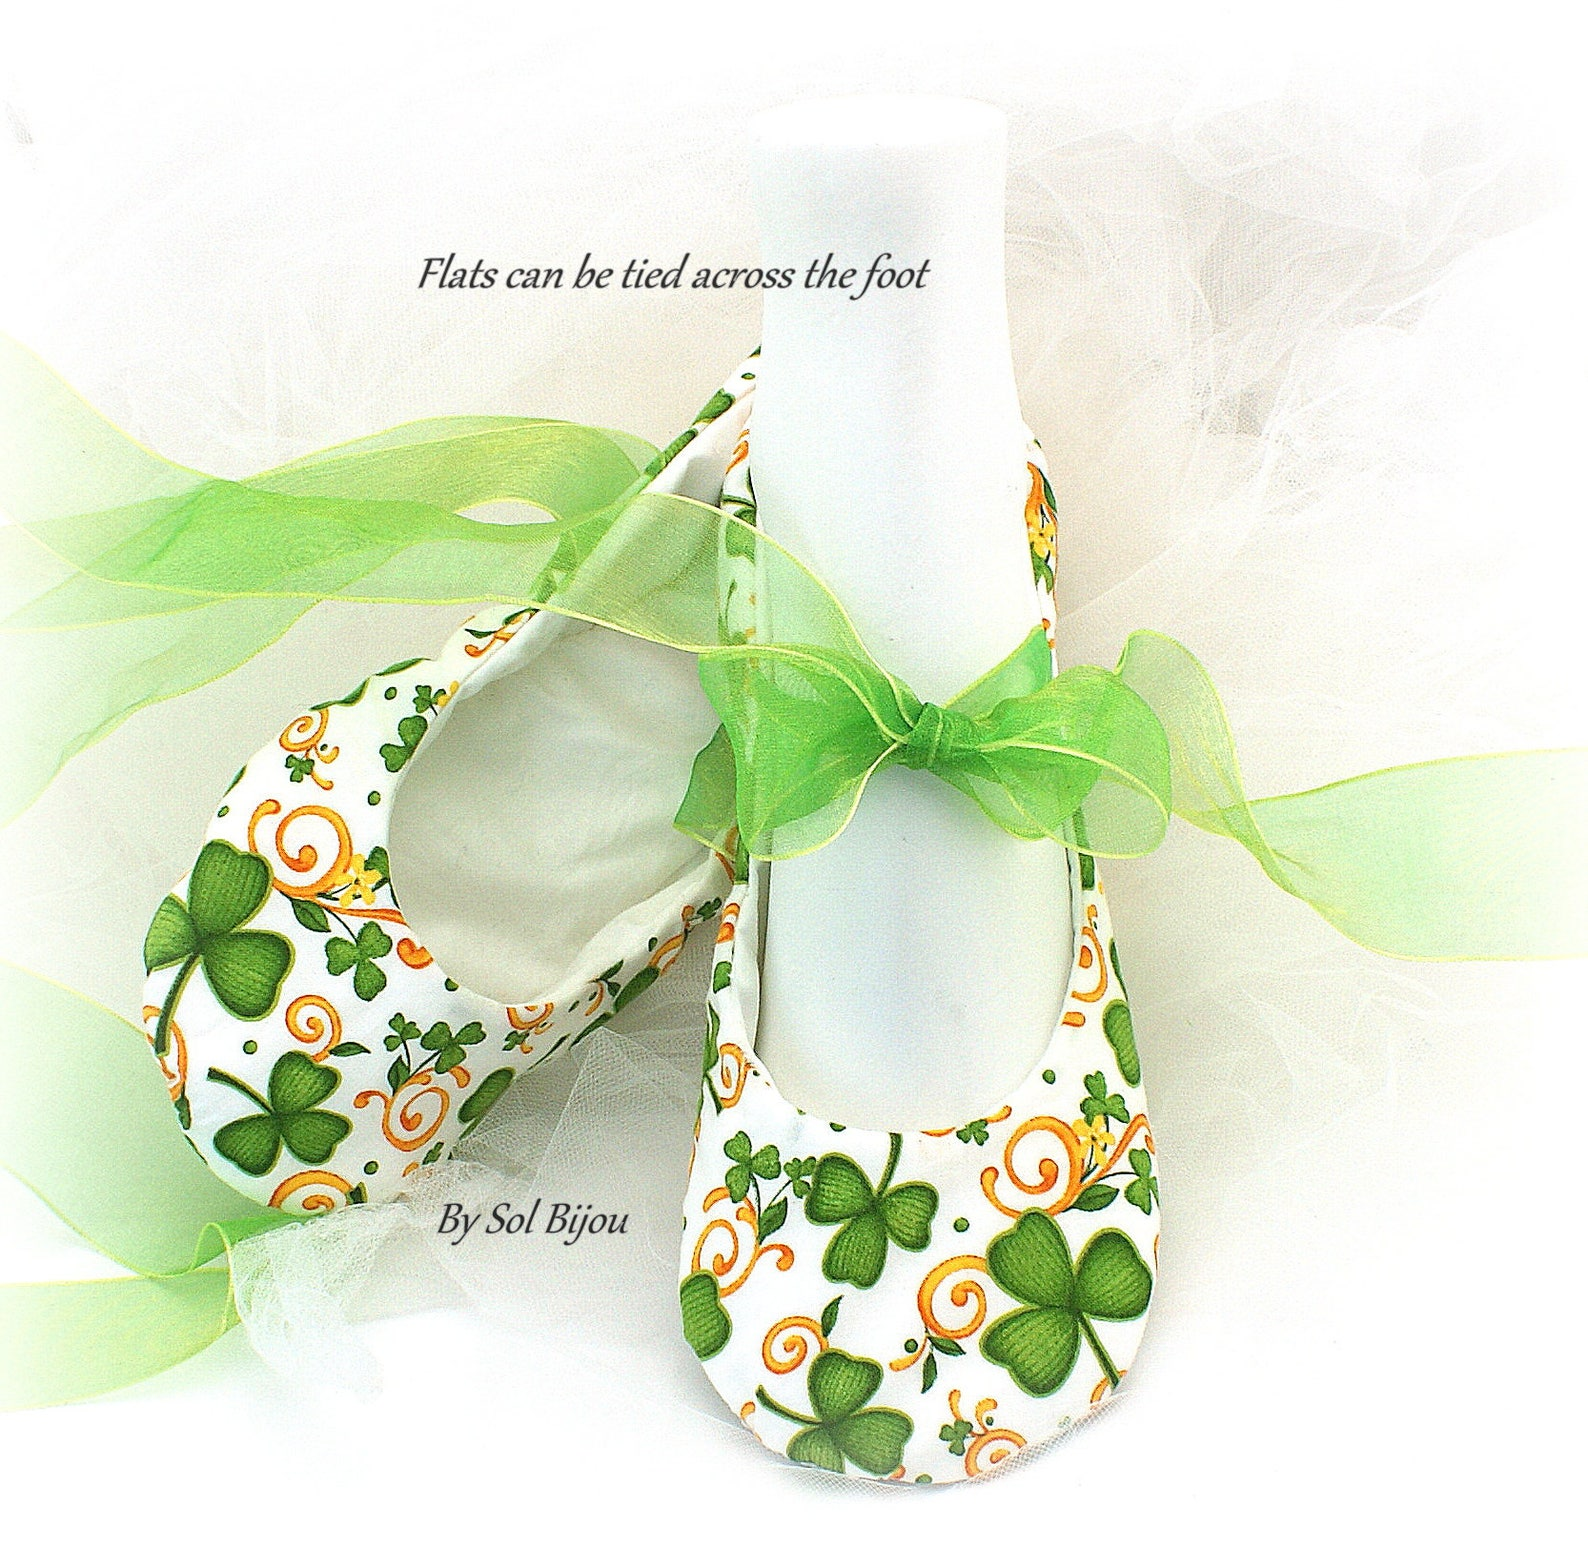 wedding ballet shoes green clover st. patrick irish theme flats with ribbons